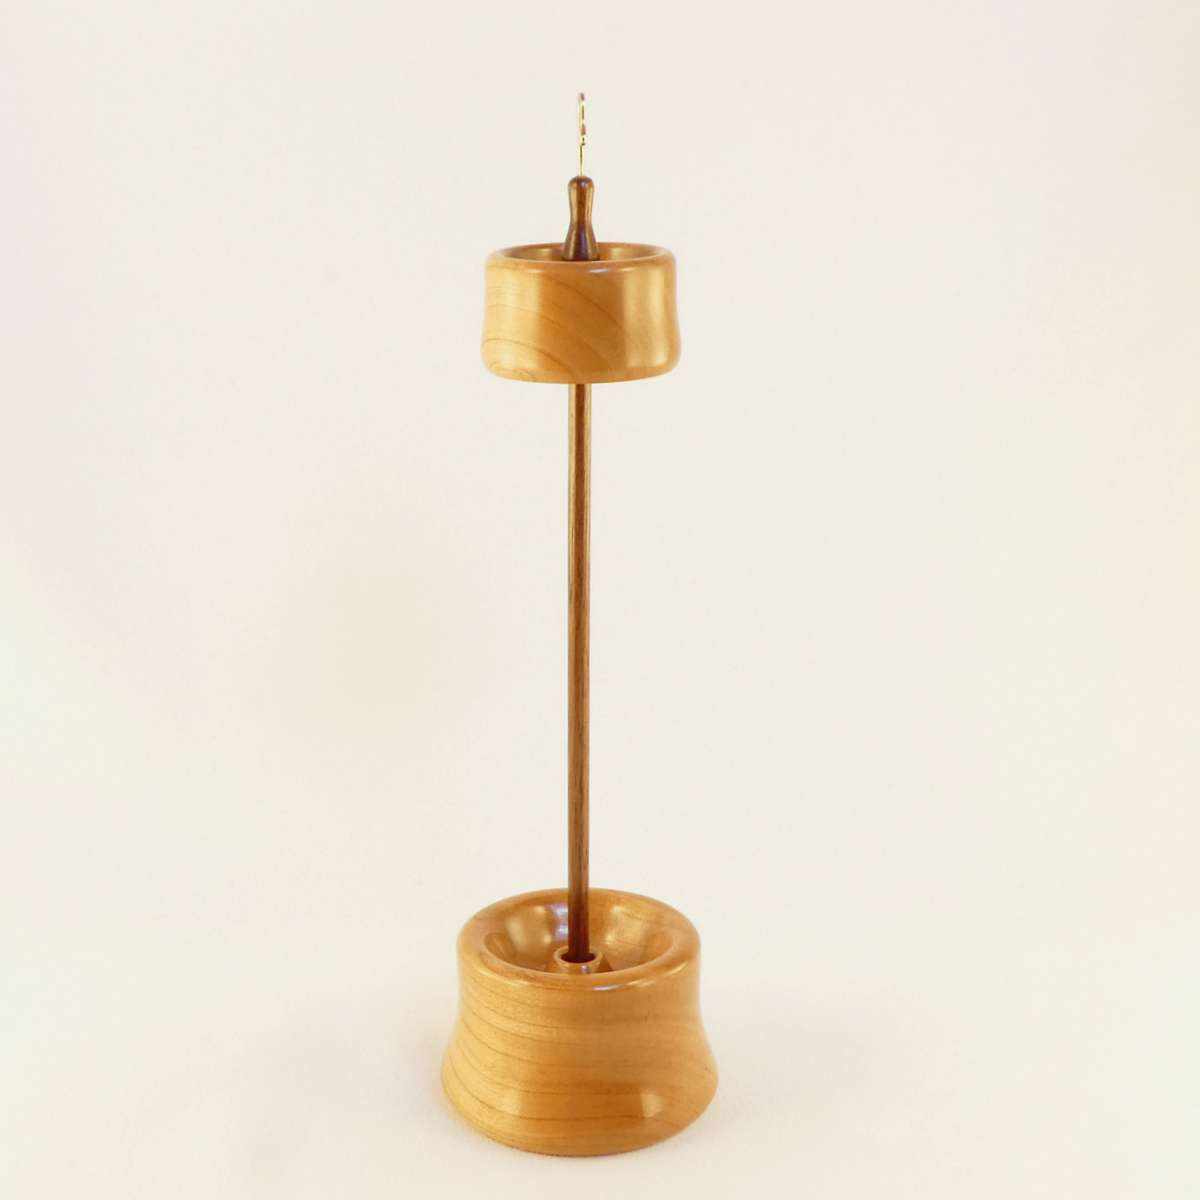 Cherry and Black Walnut Top Whorl Drop Spindle with matching display stand in Cynthia D. Haney's branch size. Handmade in Virginia USA